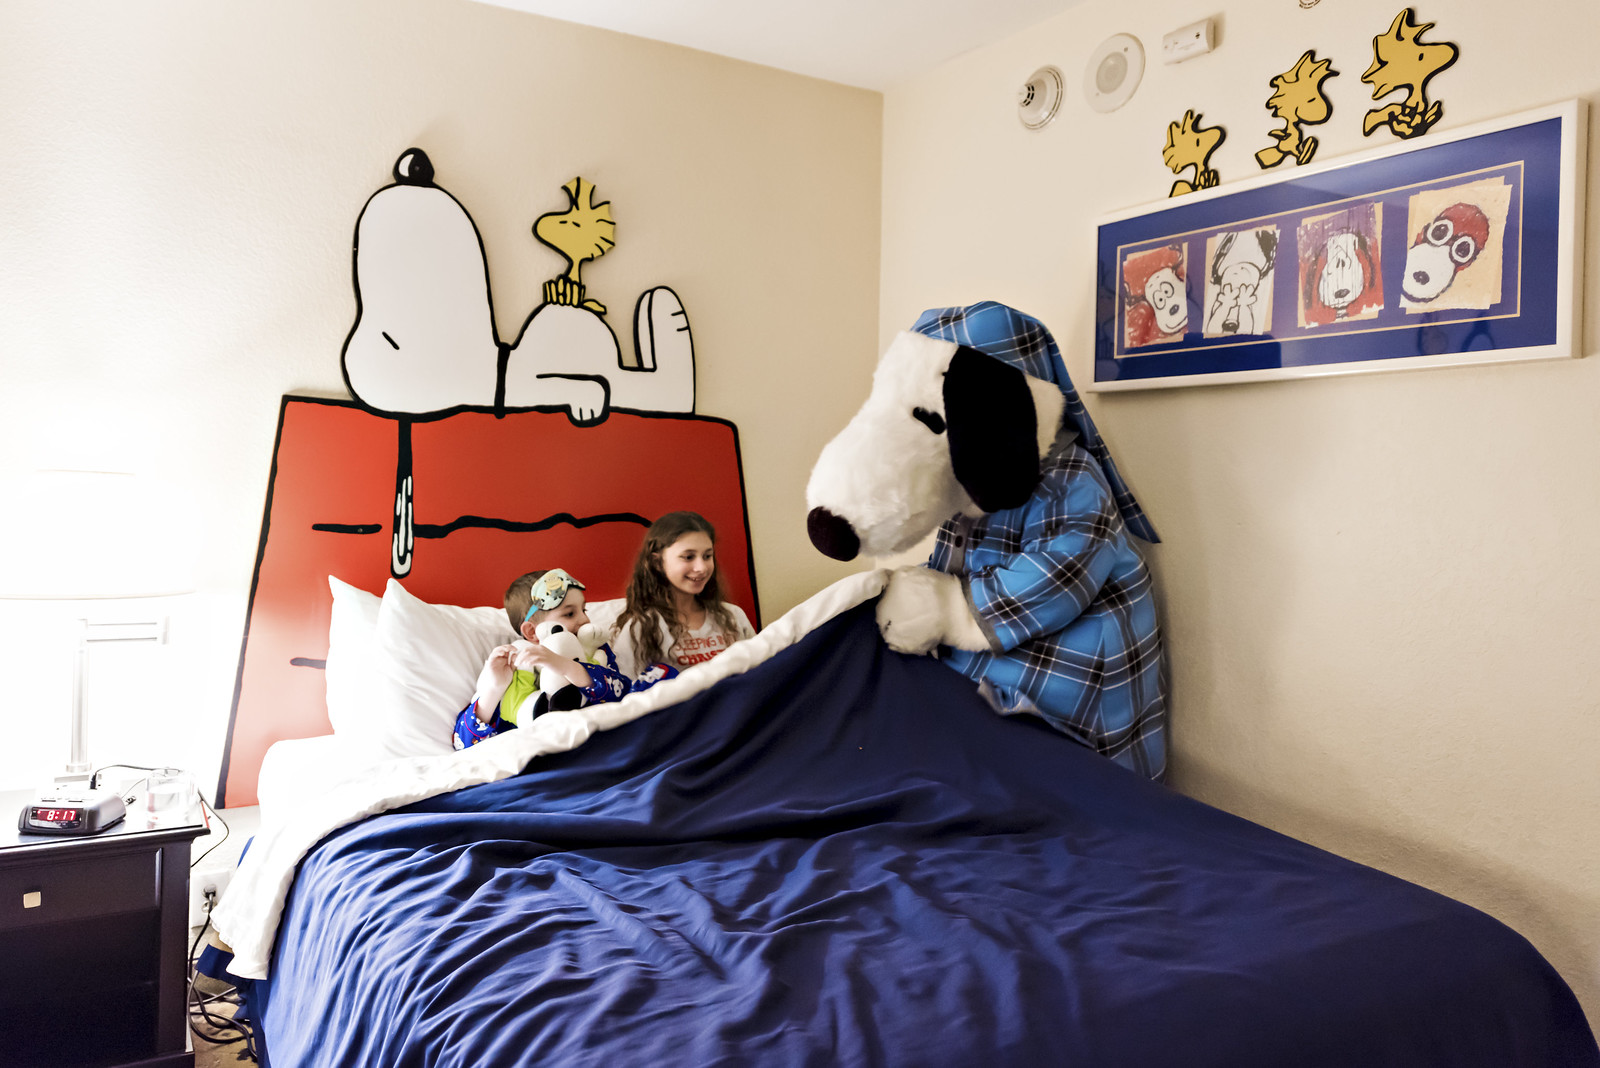 Knotts Berry Farm Hotel - camp snoopy tuck-in